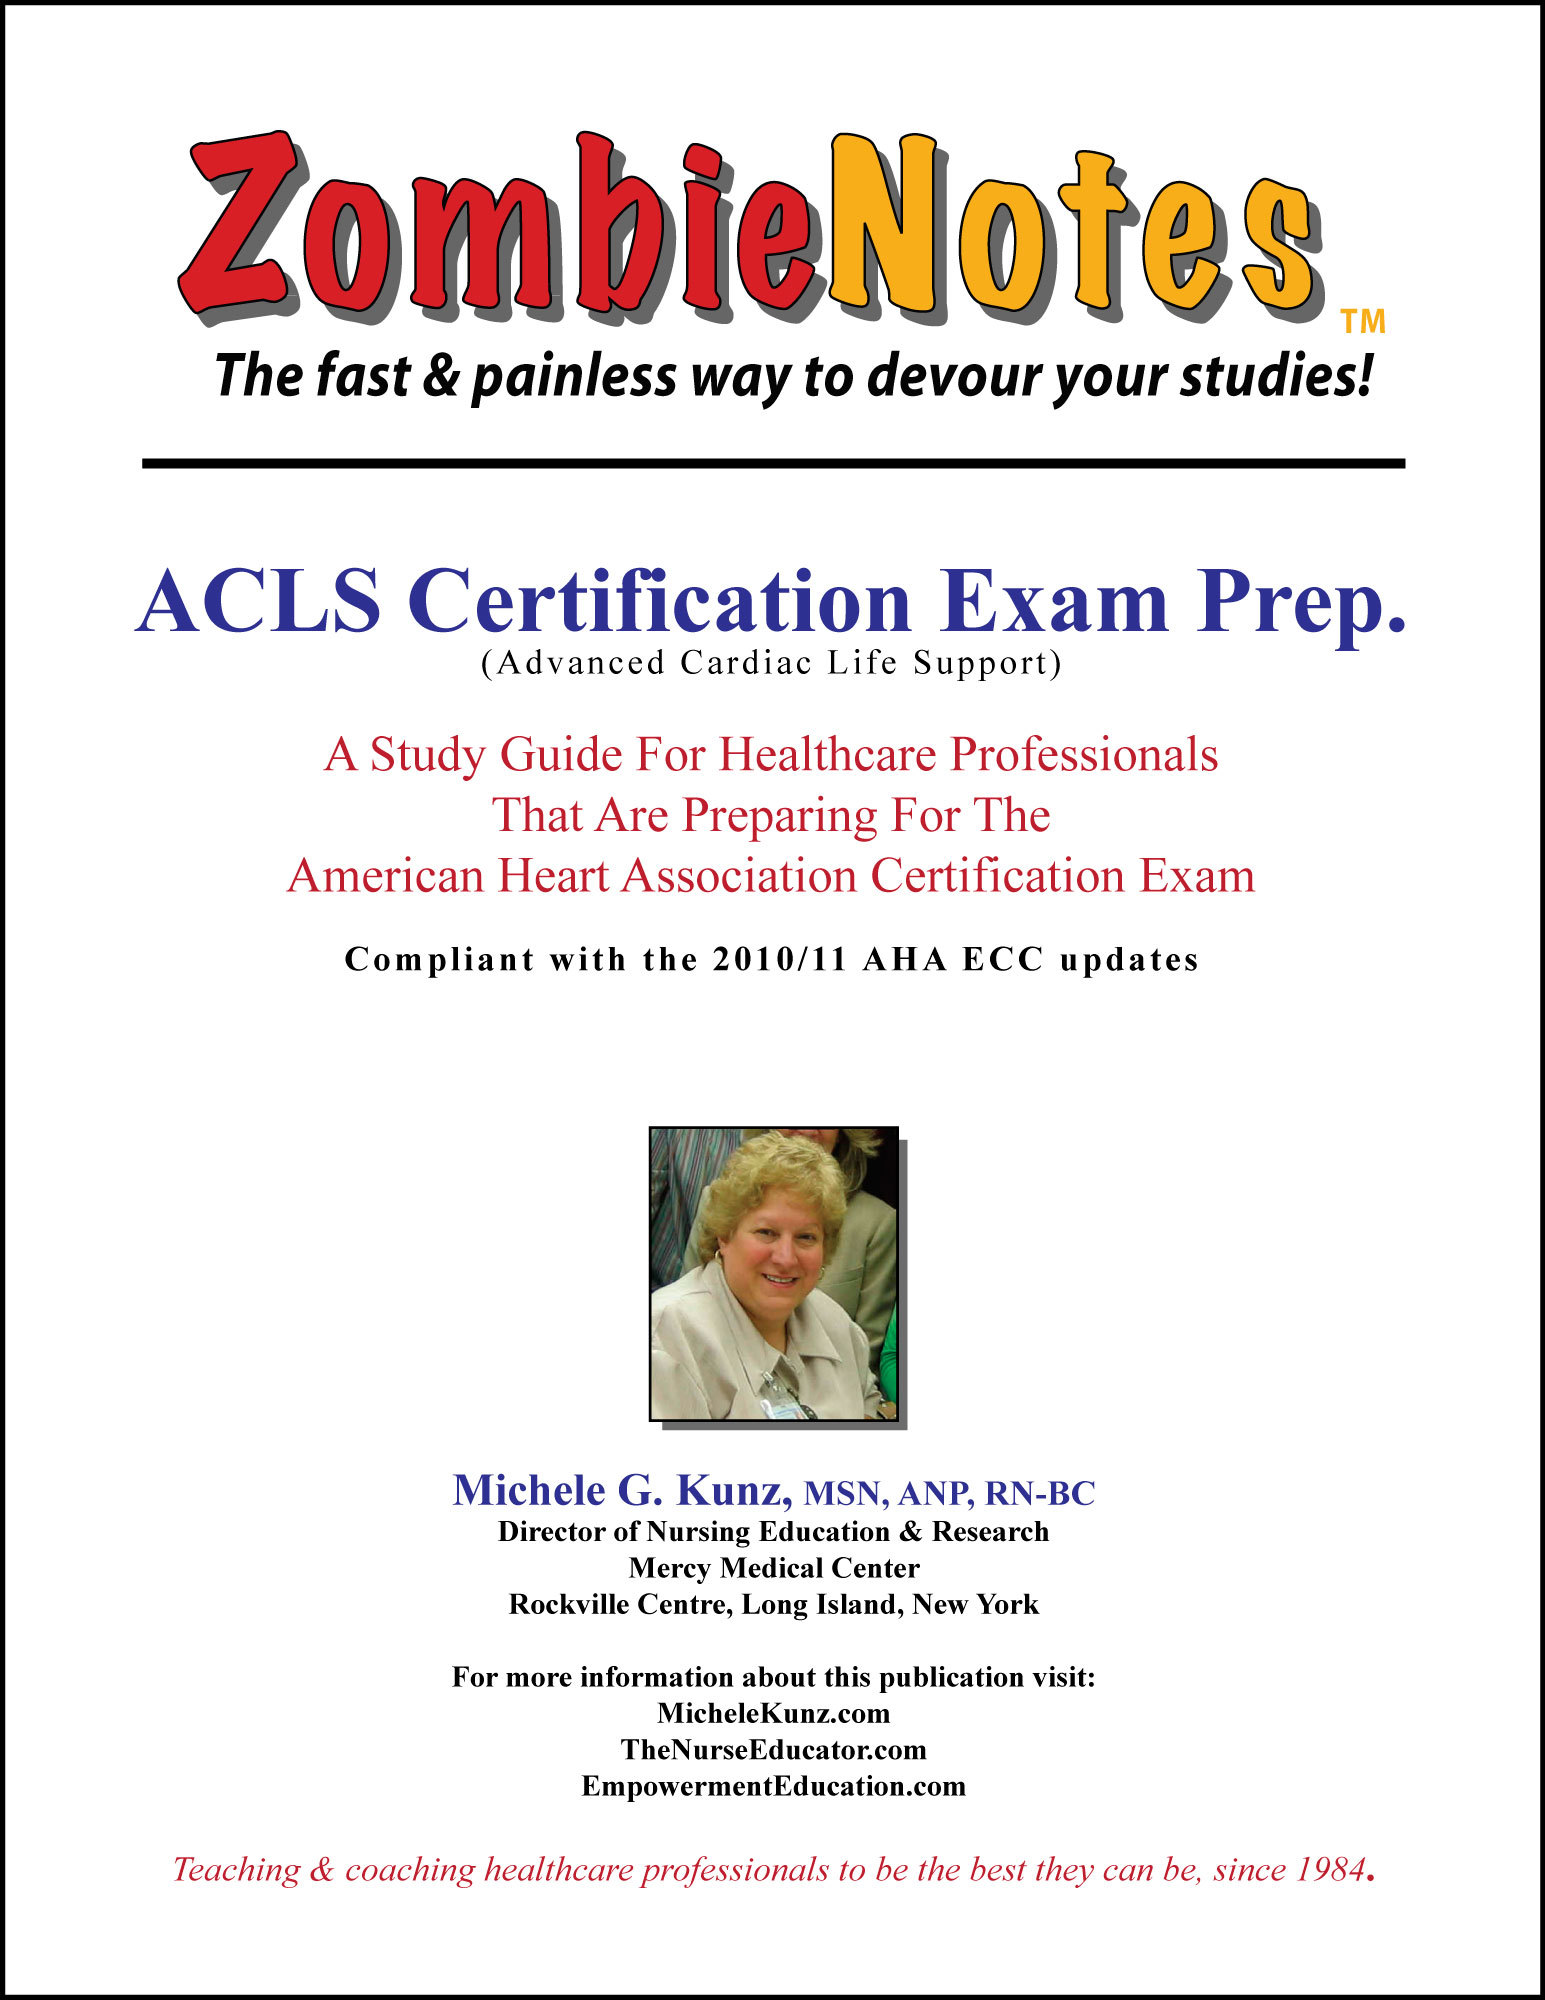 Zombie Notes ACLS Certification Exam Prep.